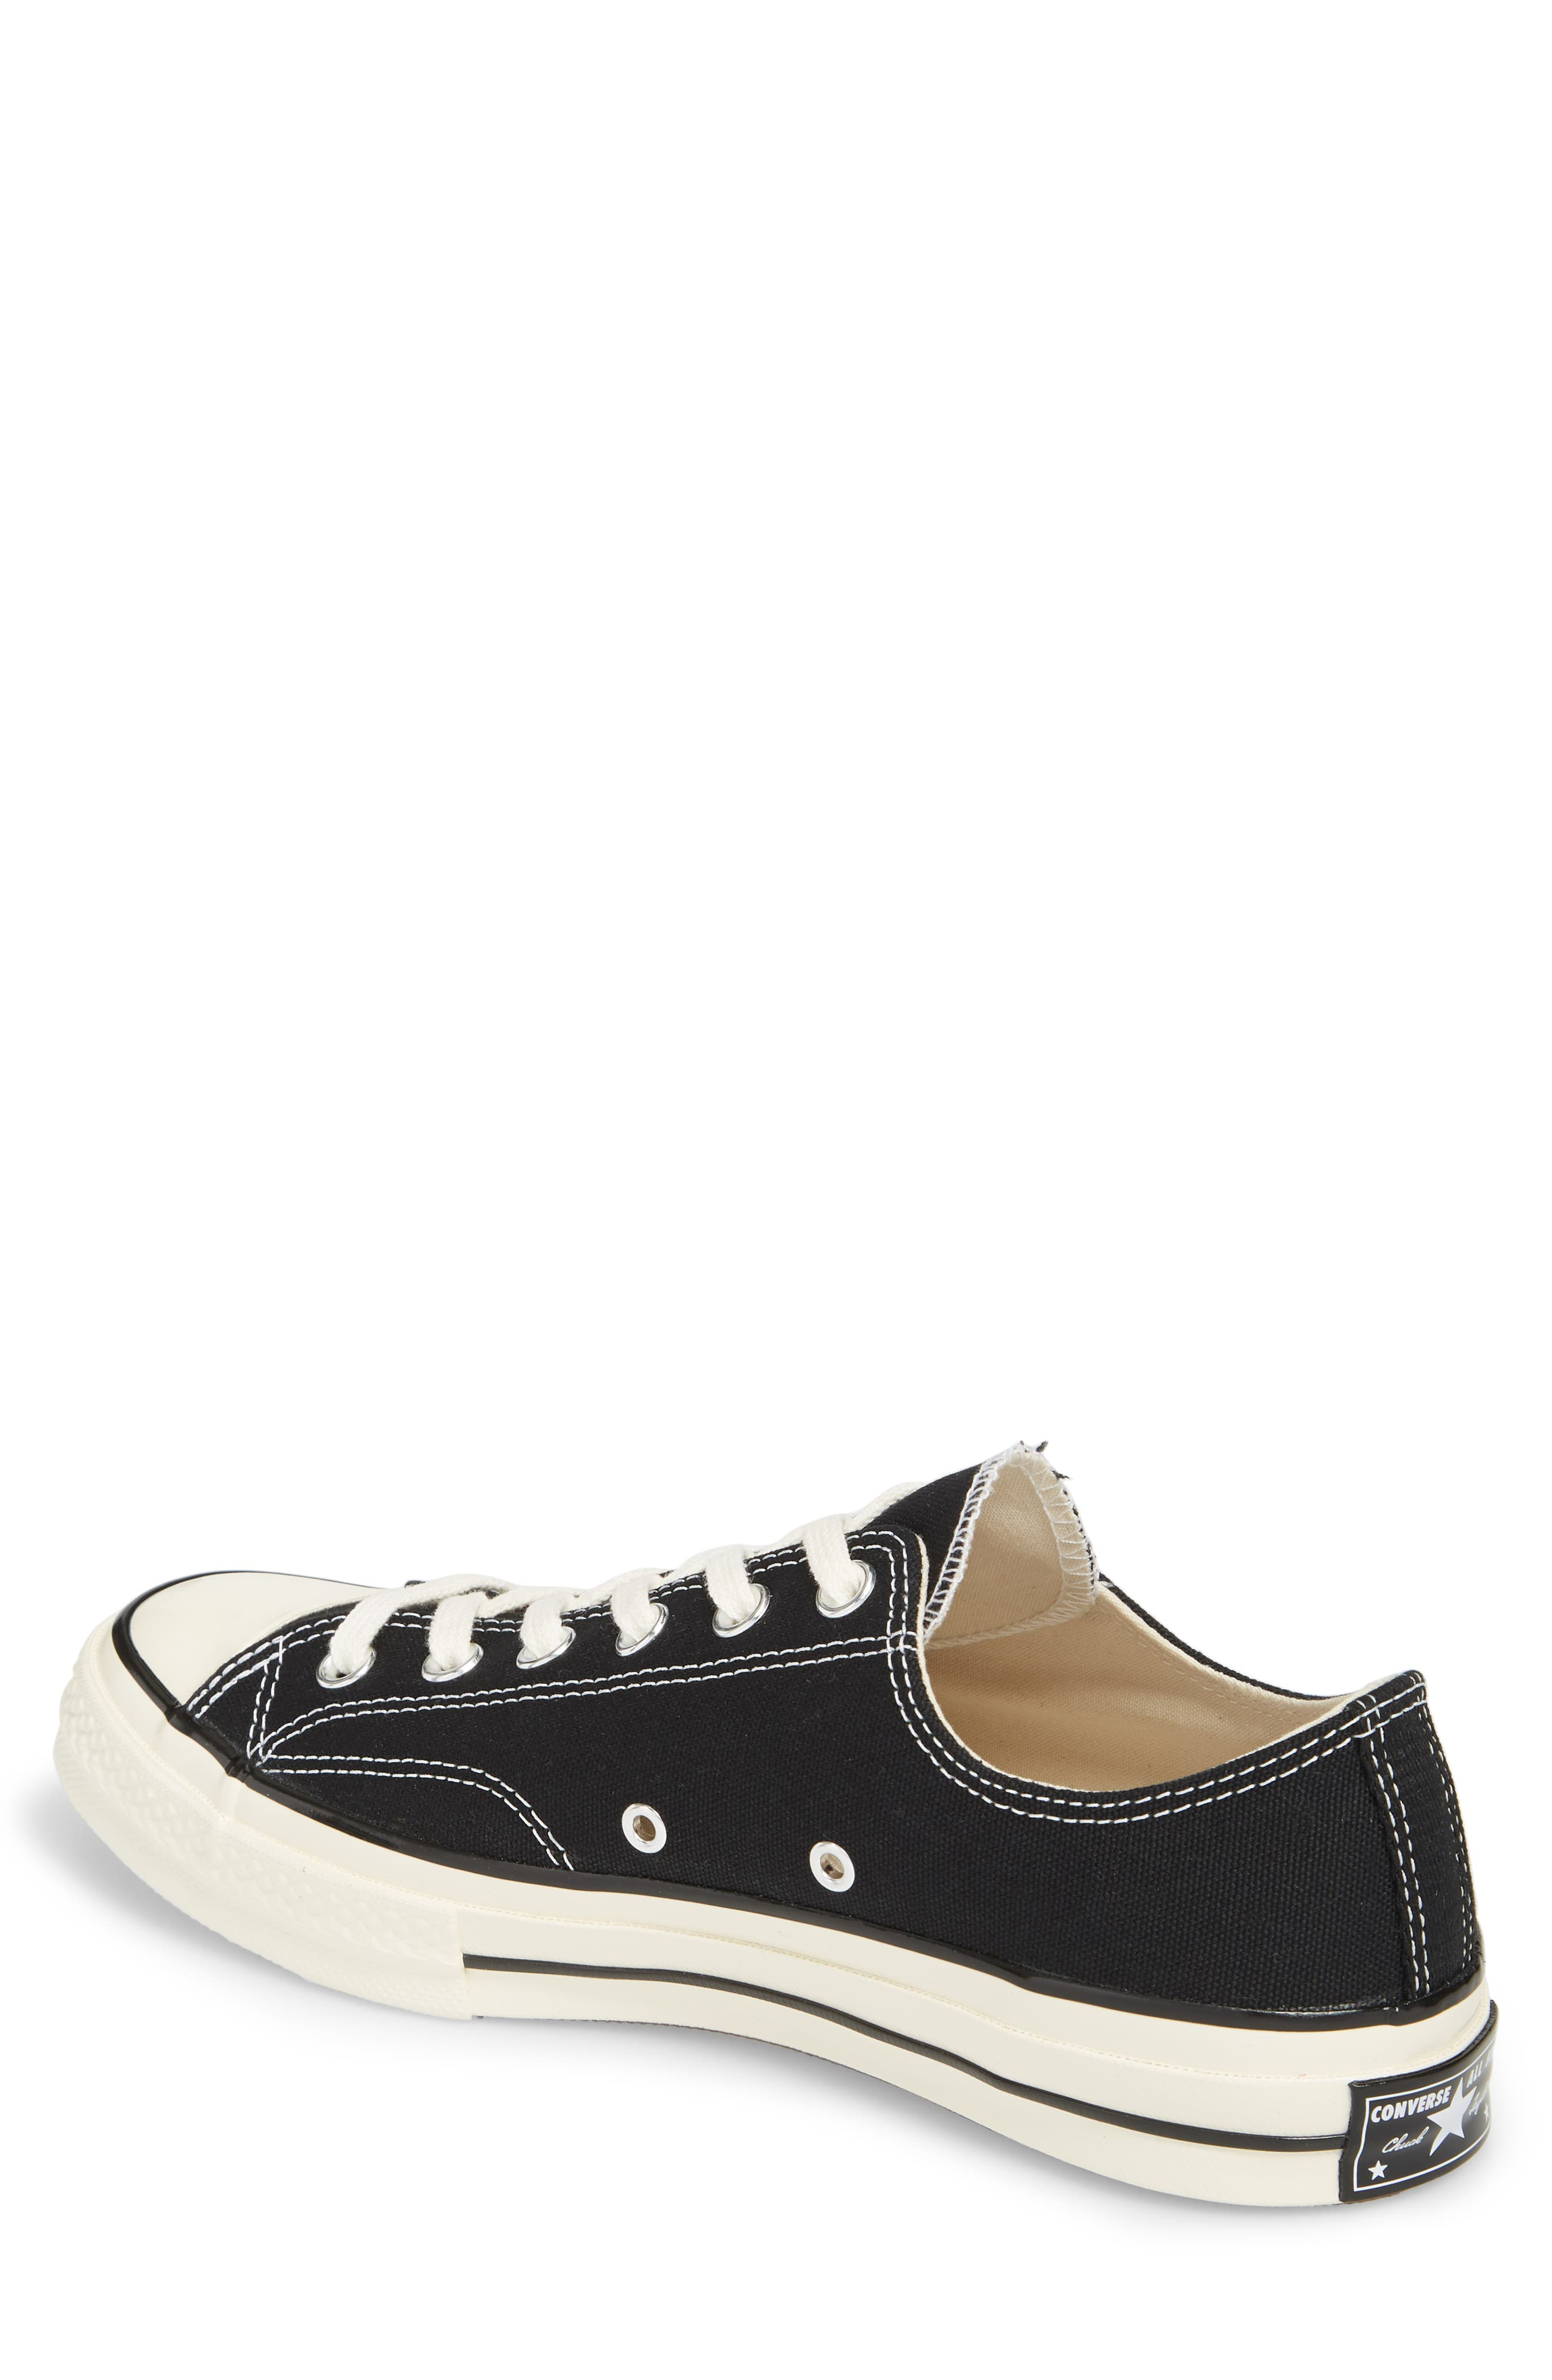 Chuck Taylor<sup>®</sup> All Star<sup>®</sup> 70 Low Top Sneaker,                             Alternate thumbnail 2, color,                             BLACK